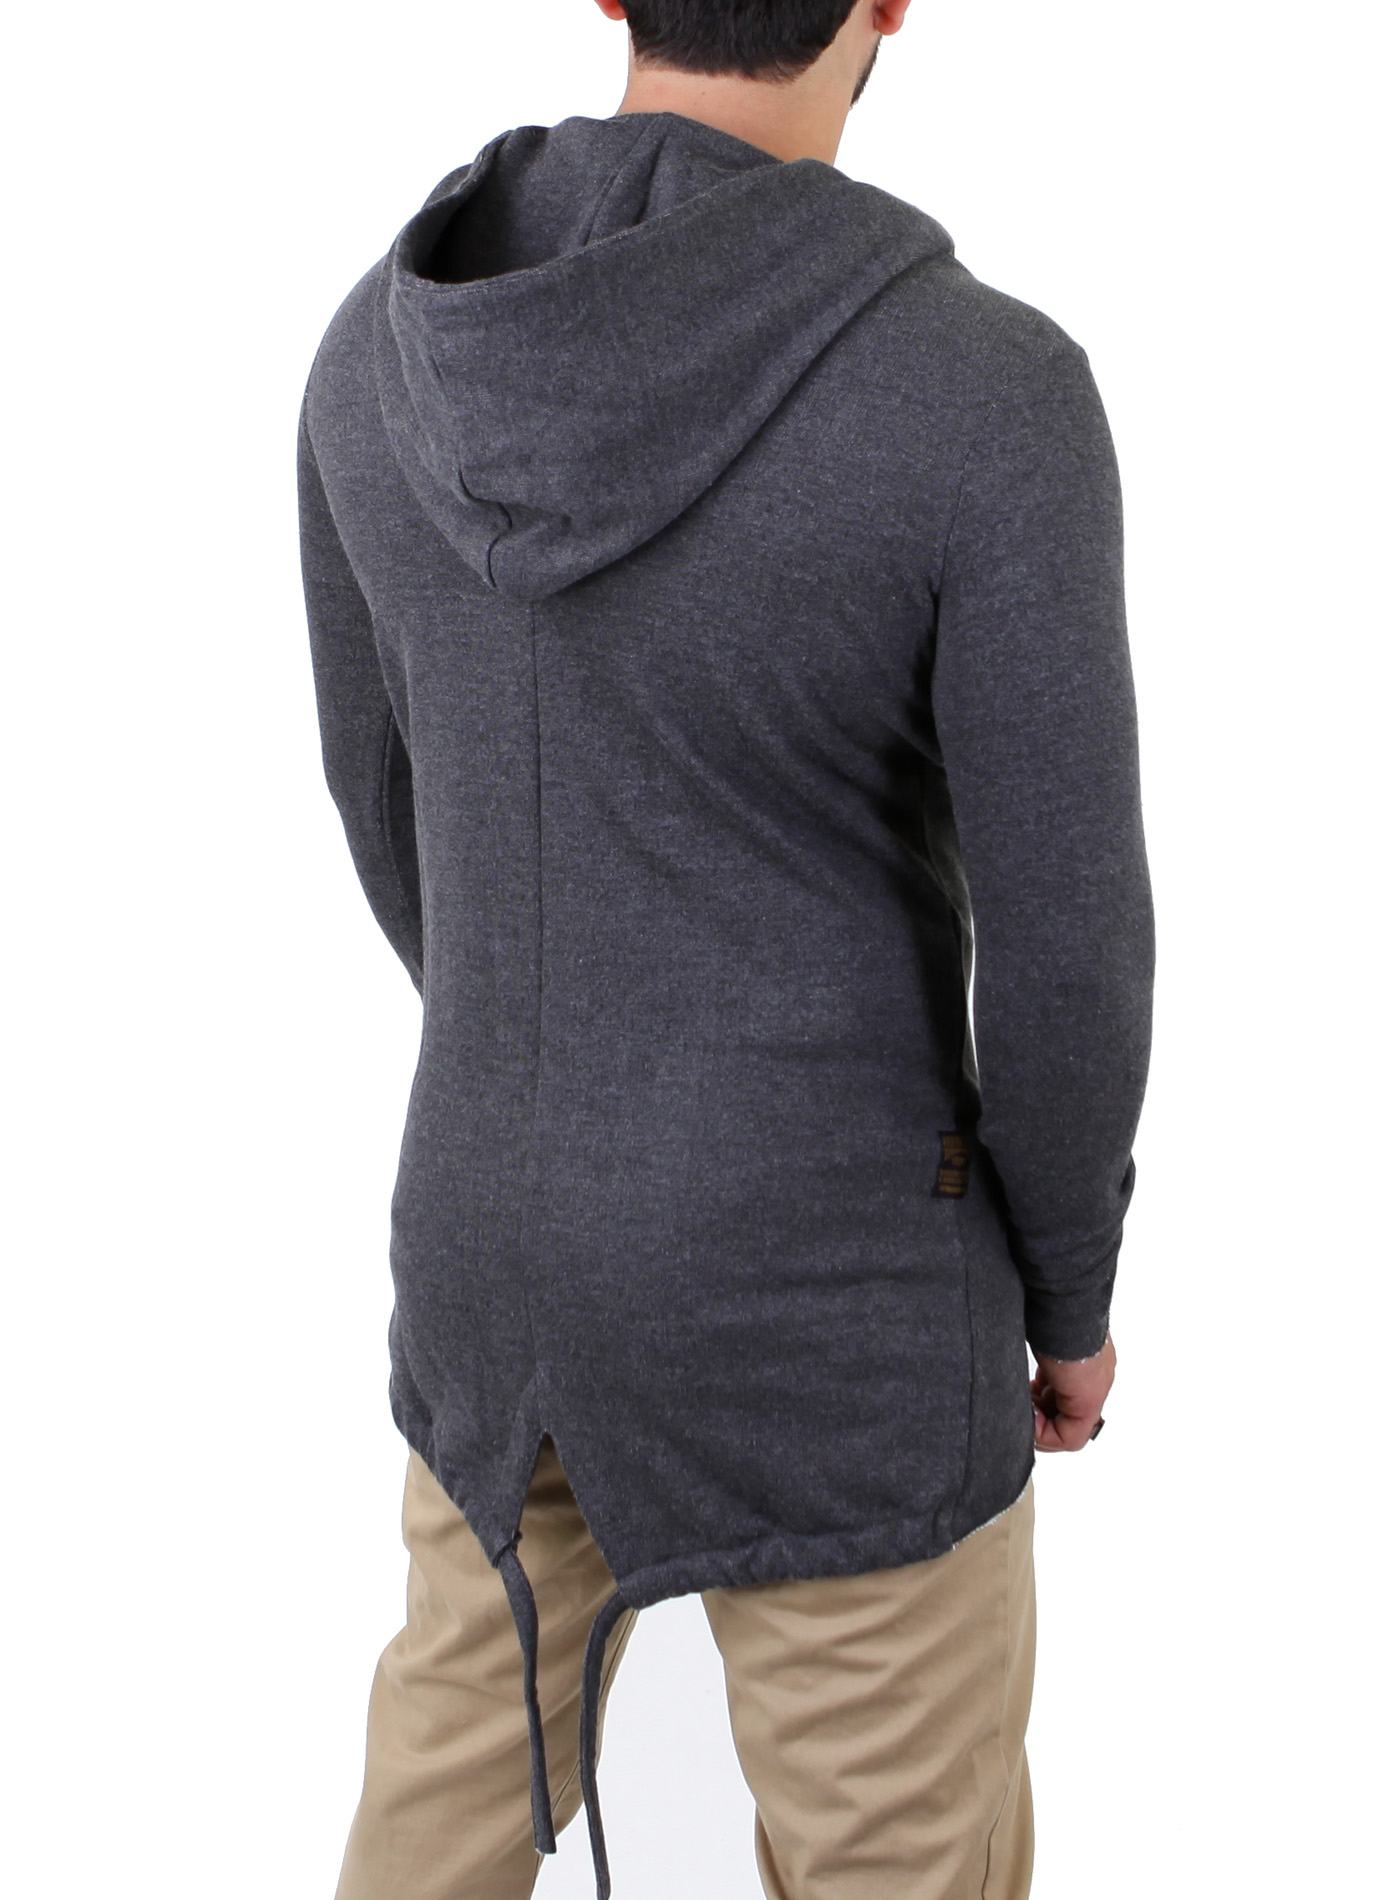 redbridge herren oversize zipper cardigan lang strick jacke pullover hoody 41354 ebay. Black Bedroom Furniture Sets. Home Design Ideas